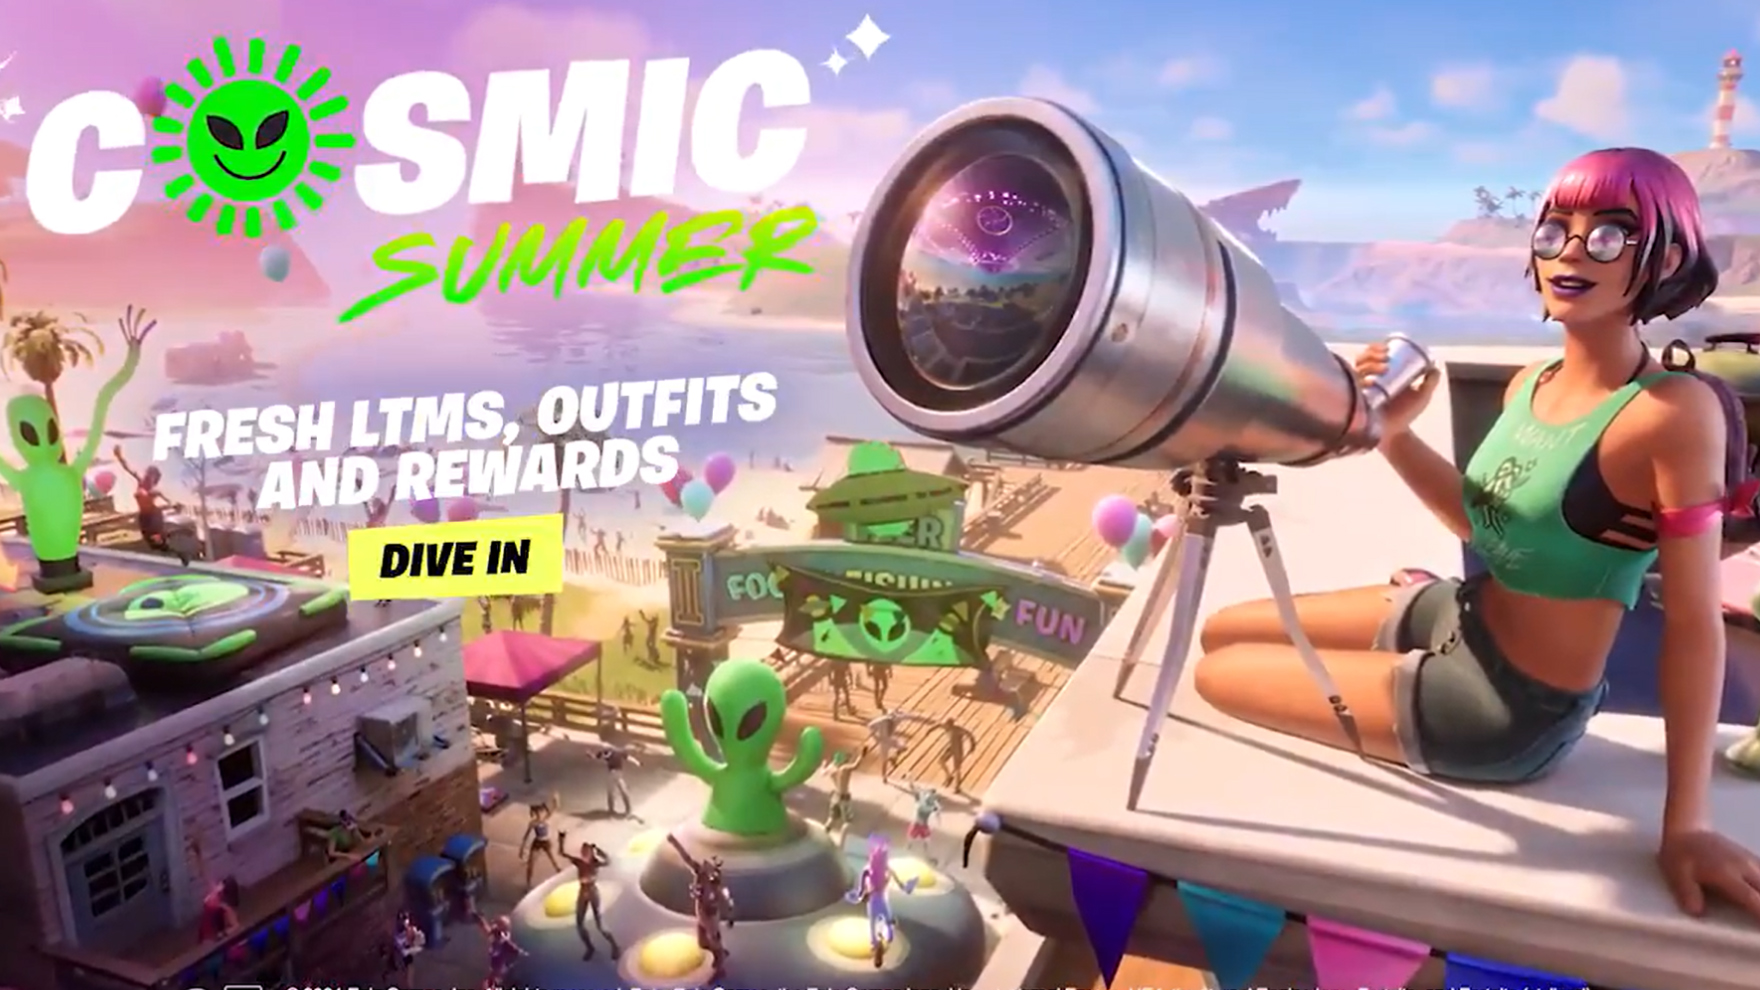 Fortnite launches a 'Cosmic Summer' update with aliens and space-themed fun